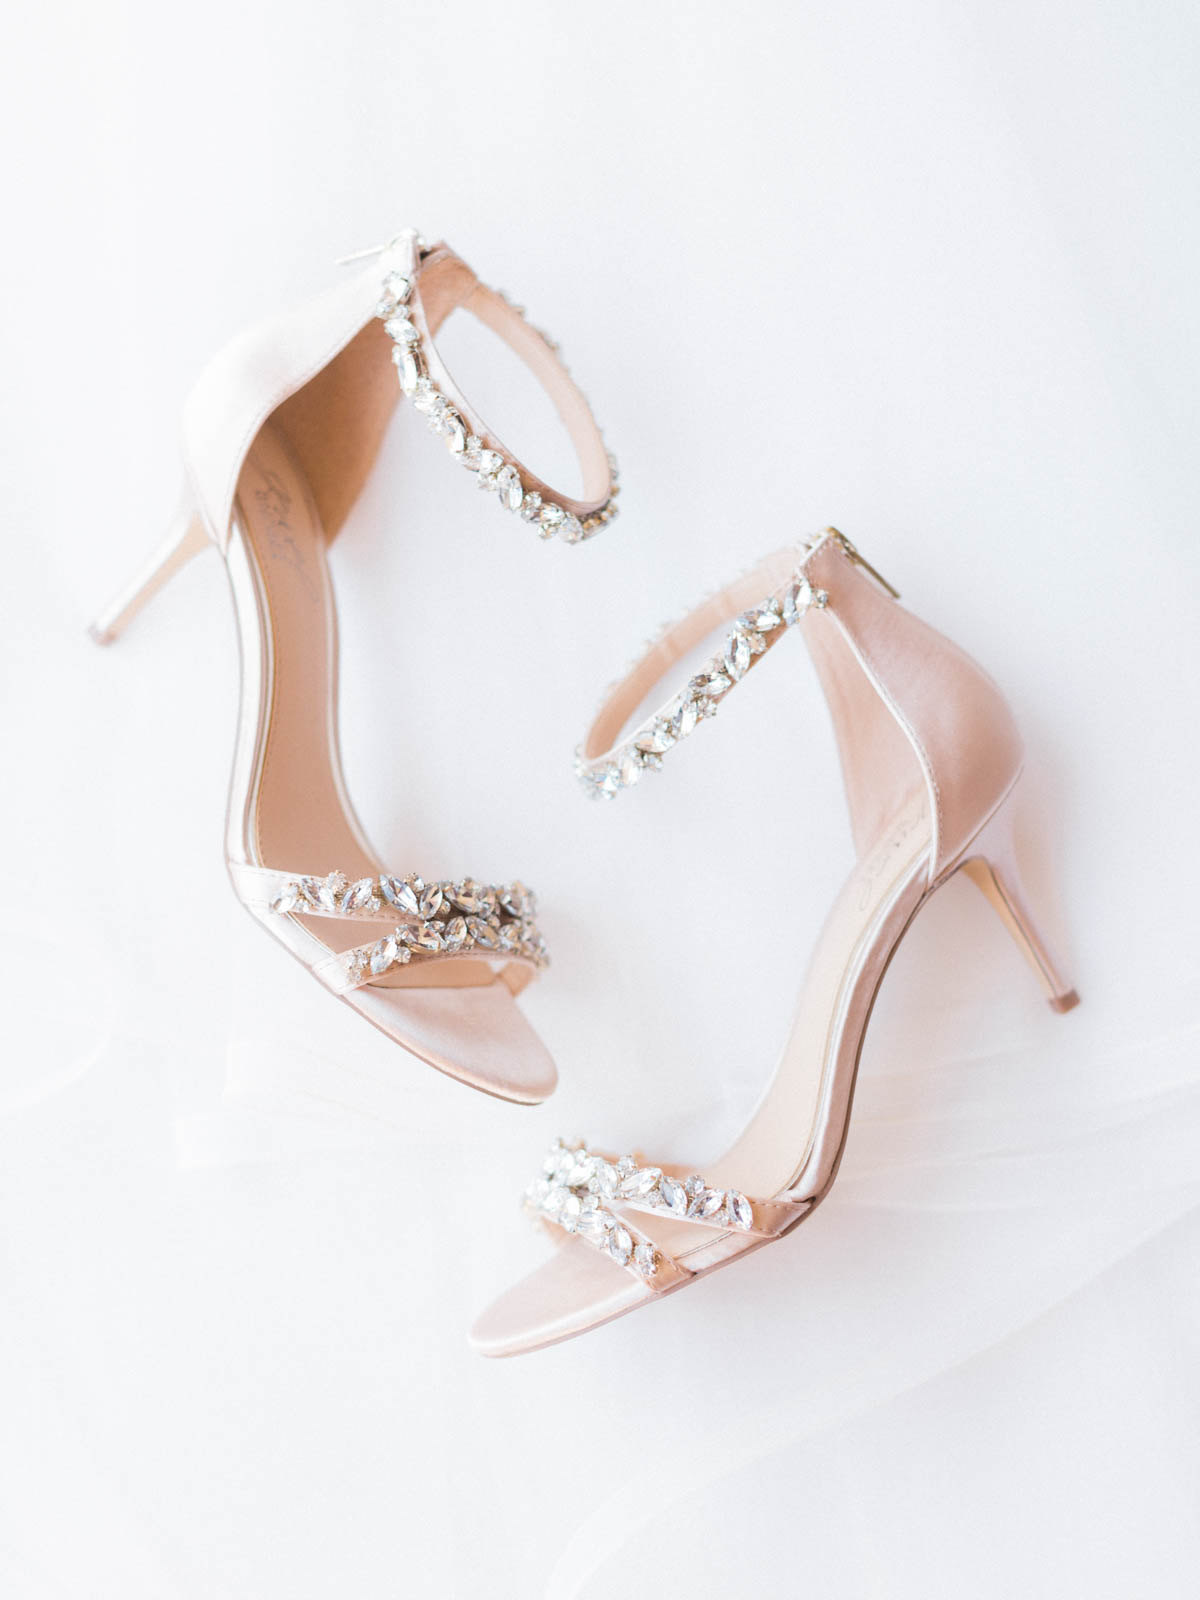 stunning bridal shoes captured by Tucson Wedding Photographers Betsy & John